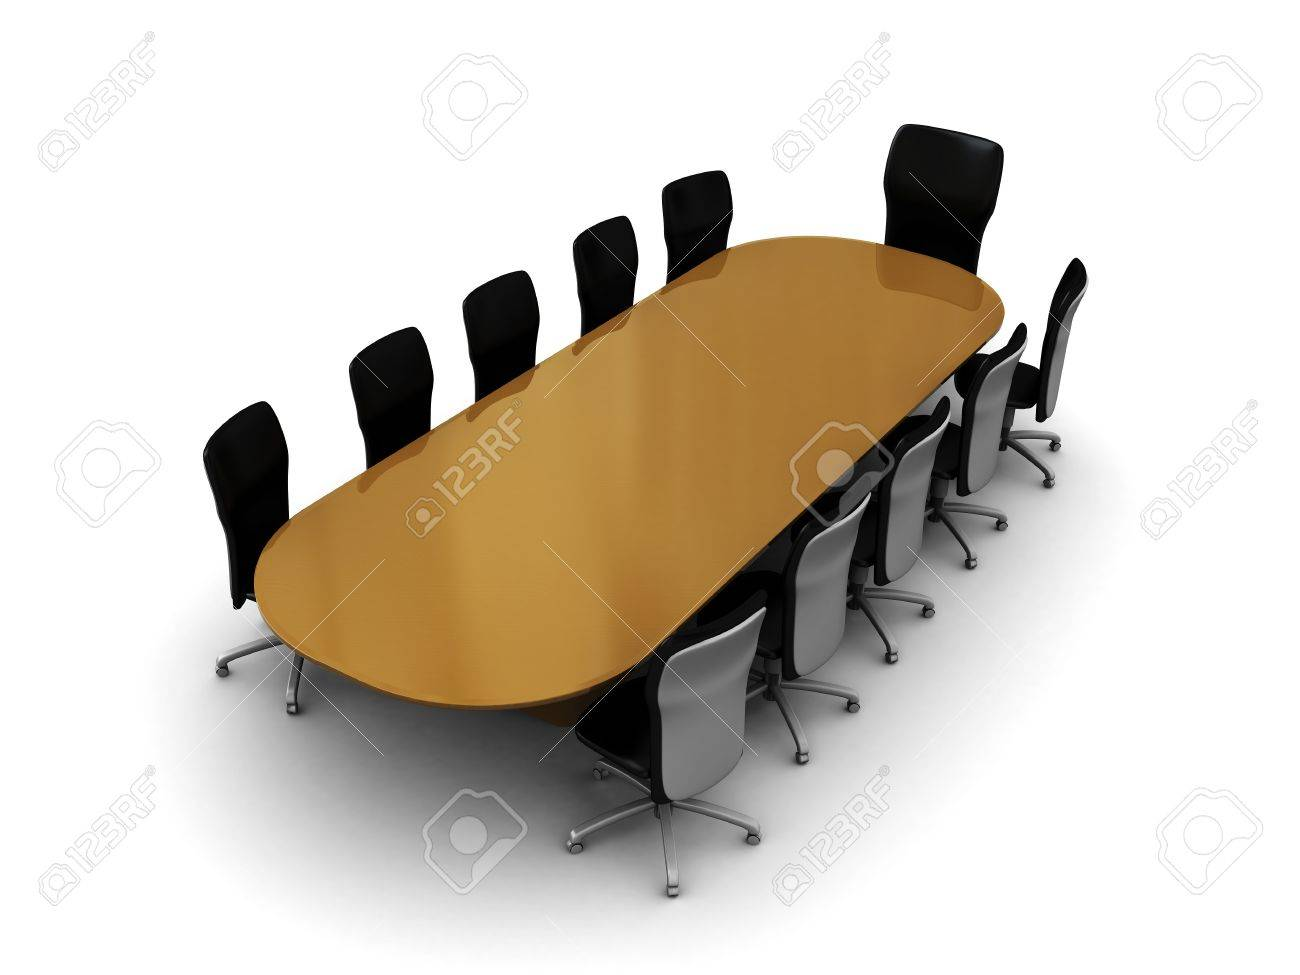 D Illustration Of Business Meeting Table And Chairs Over White - Conference room table and chairs clip art